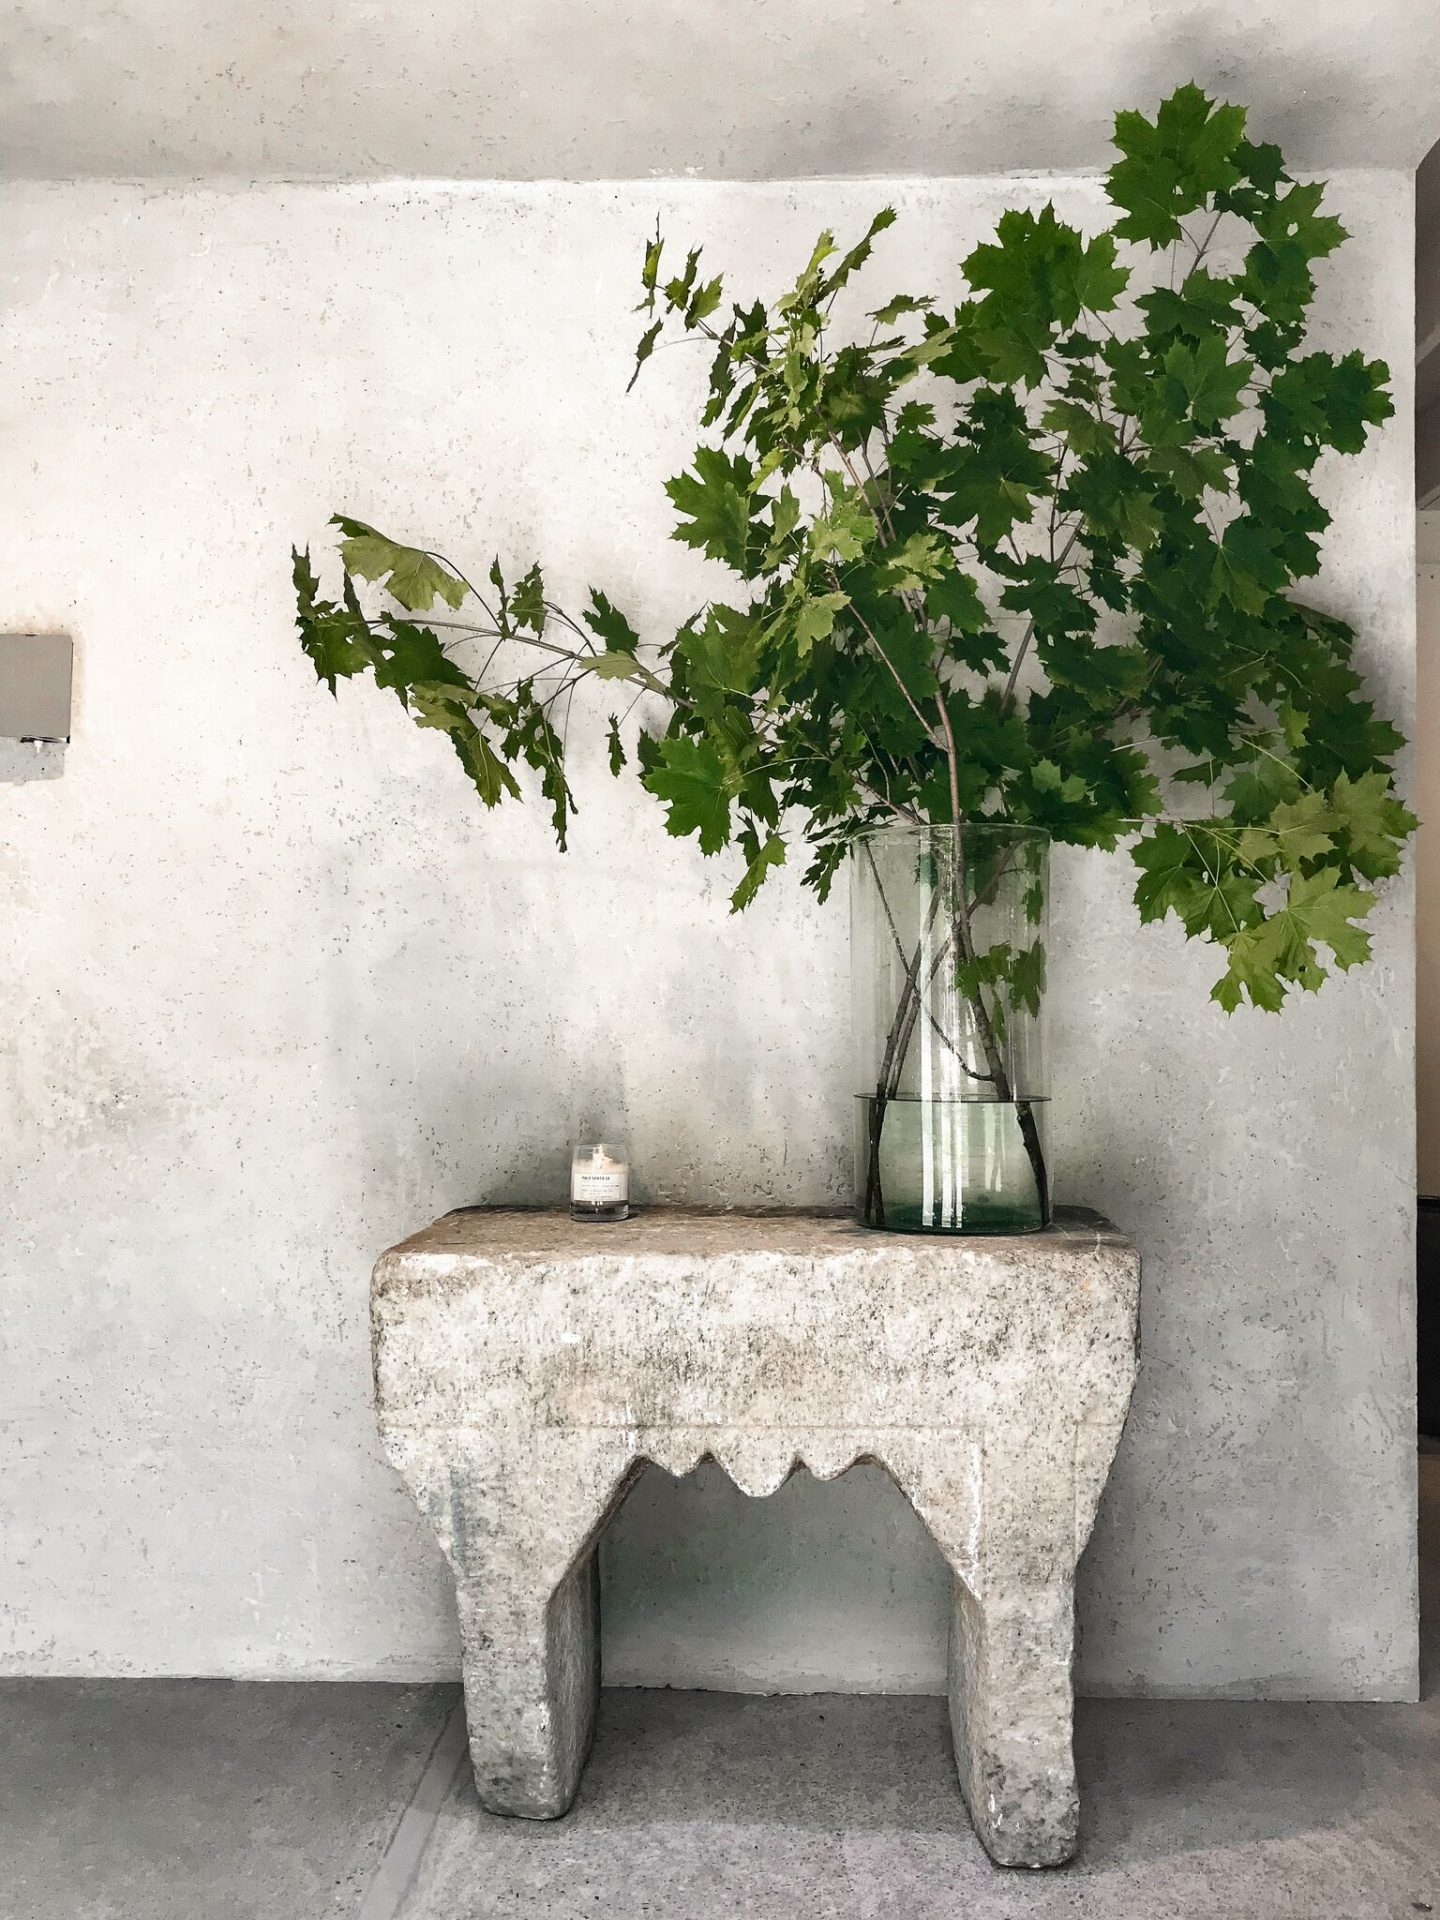 Soulful organic style, serene rustic decor, and rough luxe interior design inspiration from Michael del Piero on Hello Lovely. #roughluxe #interiordesign #soulful #luxurydesign #rusticluxurys